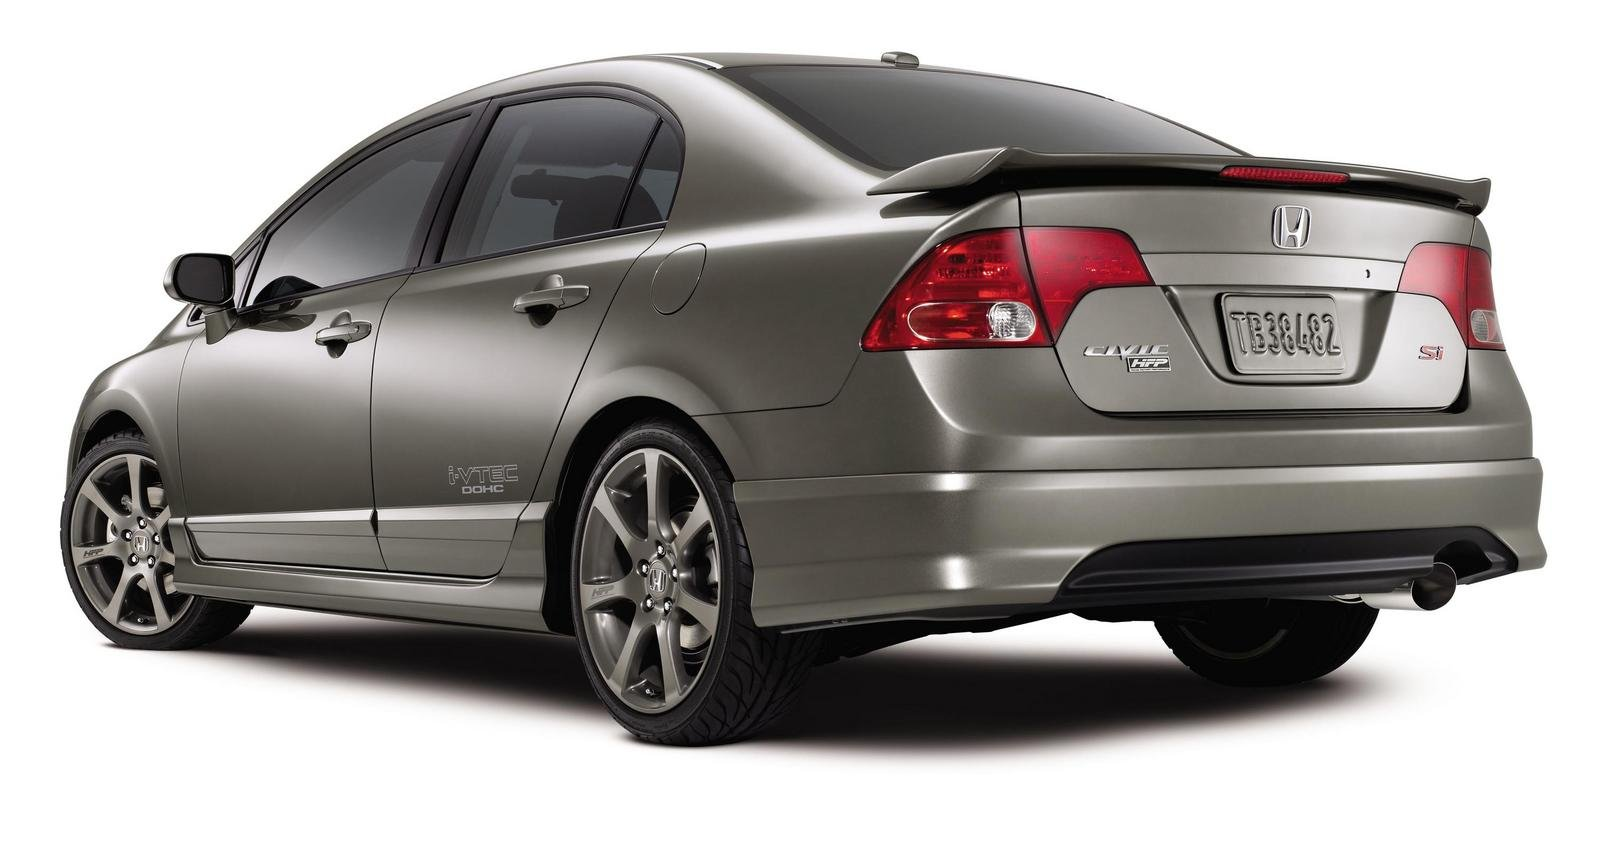 2007 honda factory performance civic si sedan picture. Black Bedroom Furniture Sets. Home Design Ideas